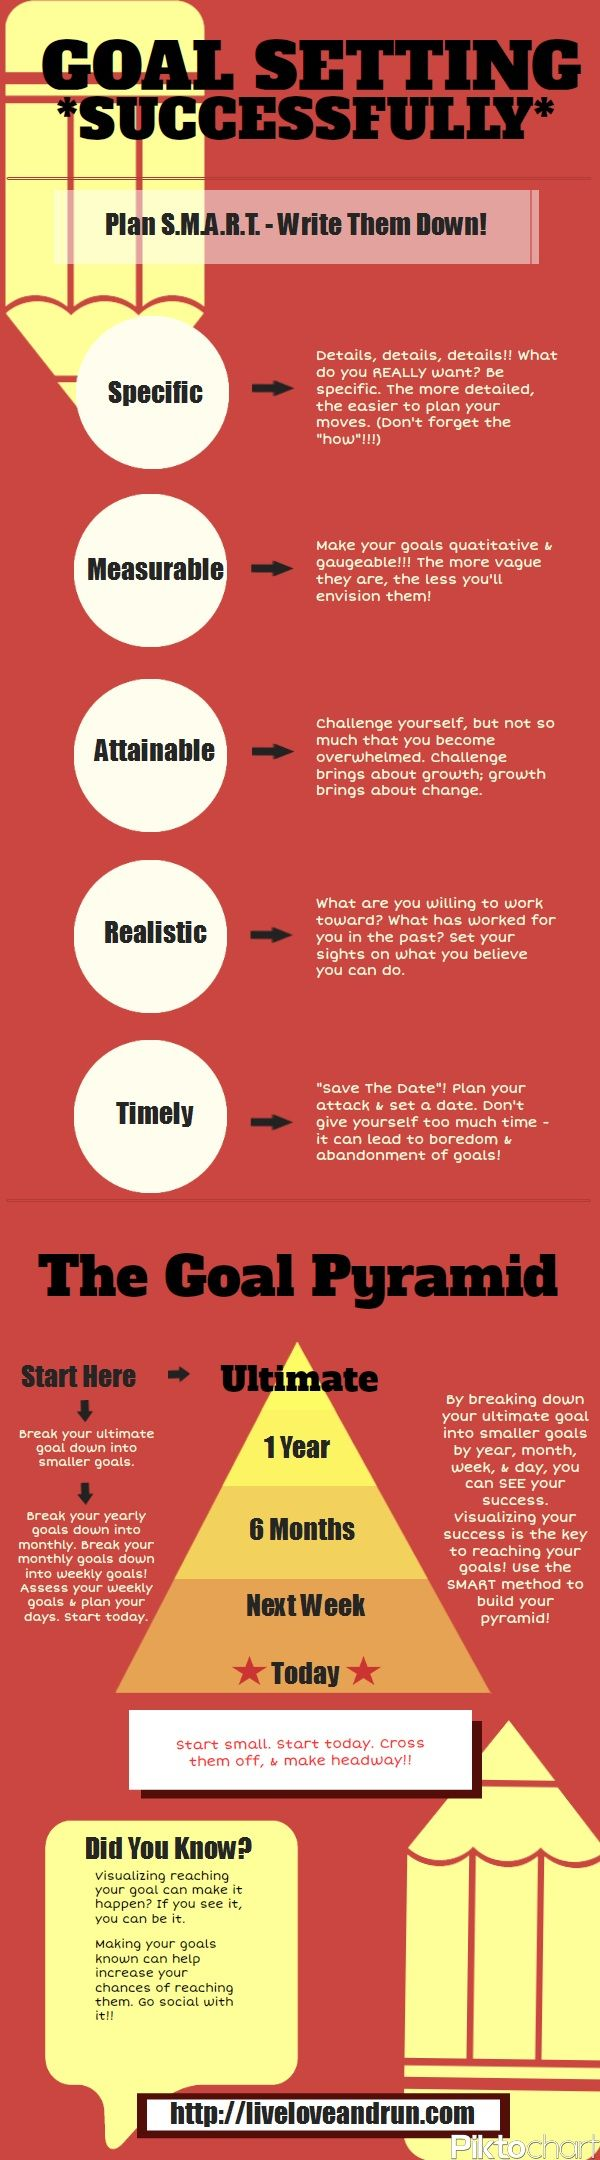 must see student goals pins fourth grade counseling how to successfully set goals this article describes goal setting in general but